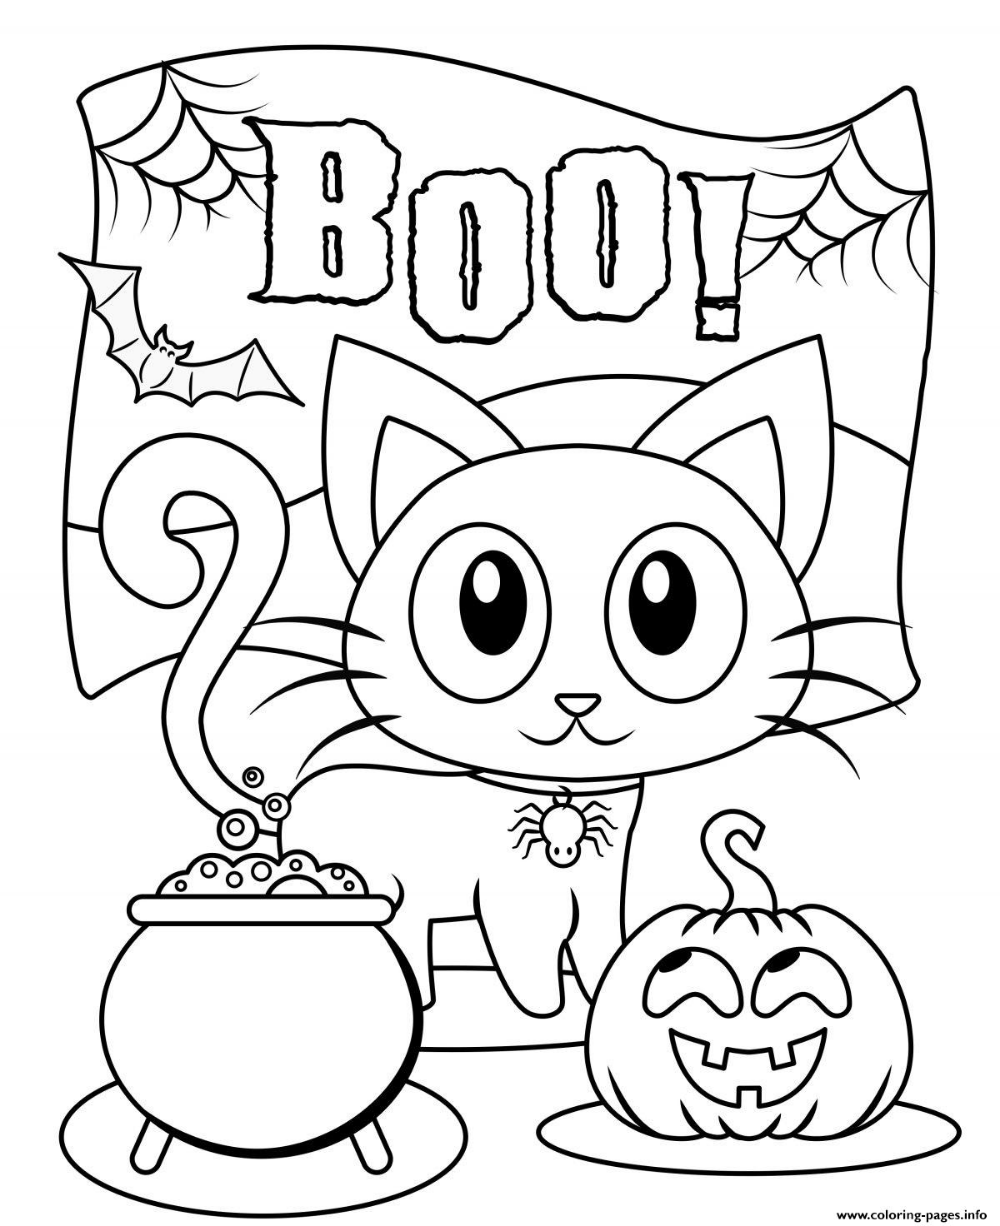 Print Halloween Boo Cat Cute Kids Coloring Pages Free Halloween Coloring Pages Halloween Coloring Book Monster Coloring Pages